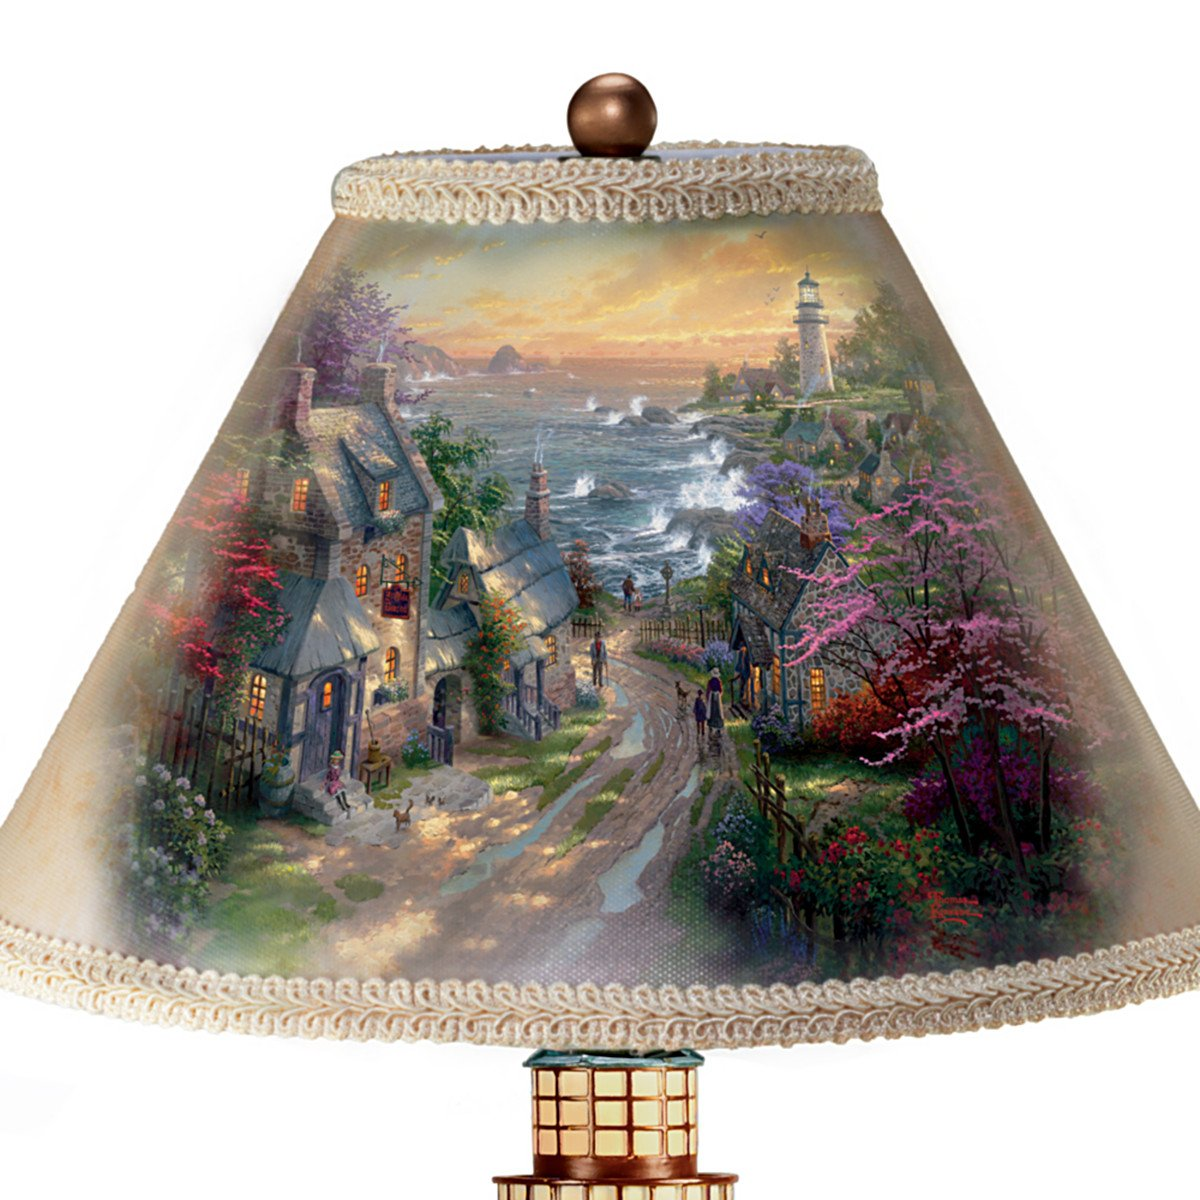 Thomas Kinkade Lamp With The Village Lighthouse Artwork On Shade And Lighthouse Base by The Bradford Exchange by Bradford Exchange (Image #2)